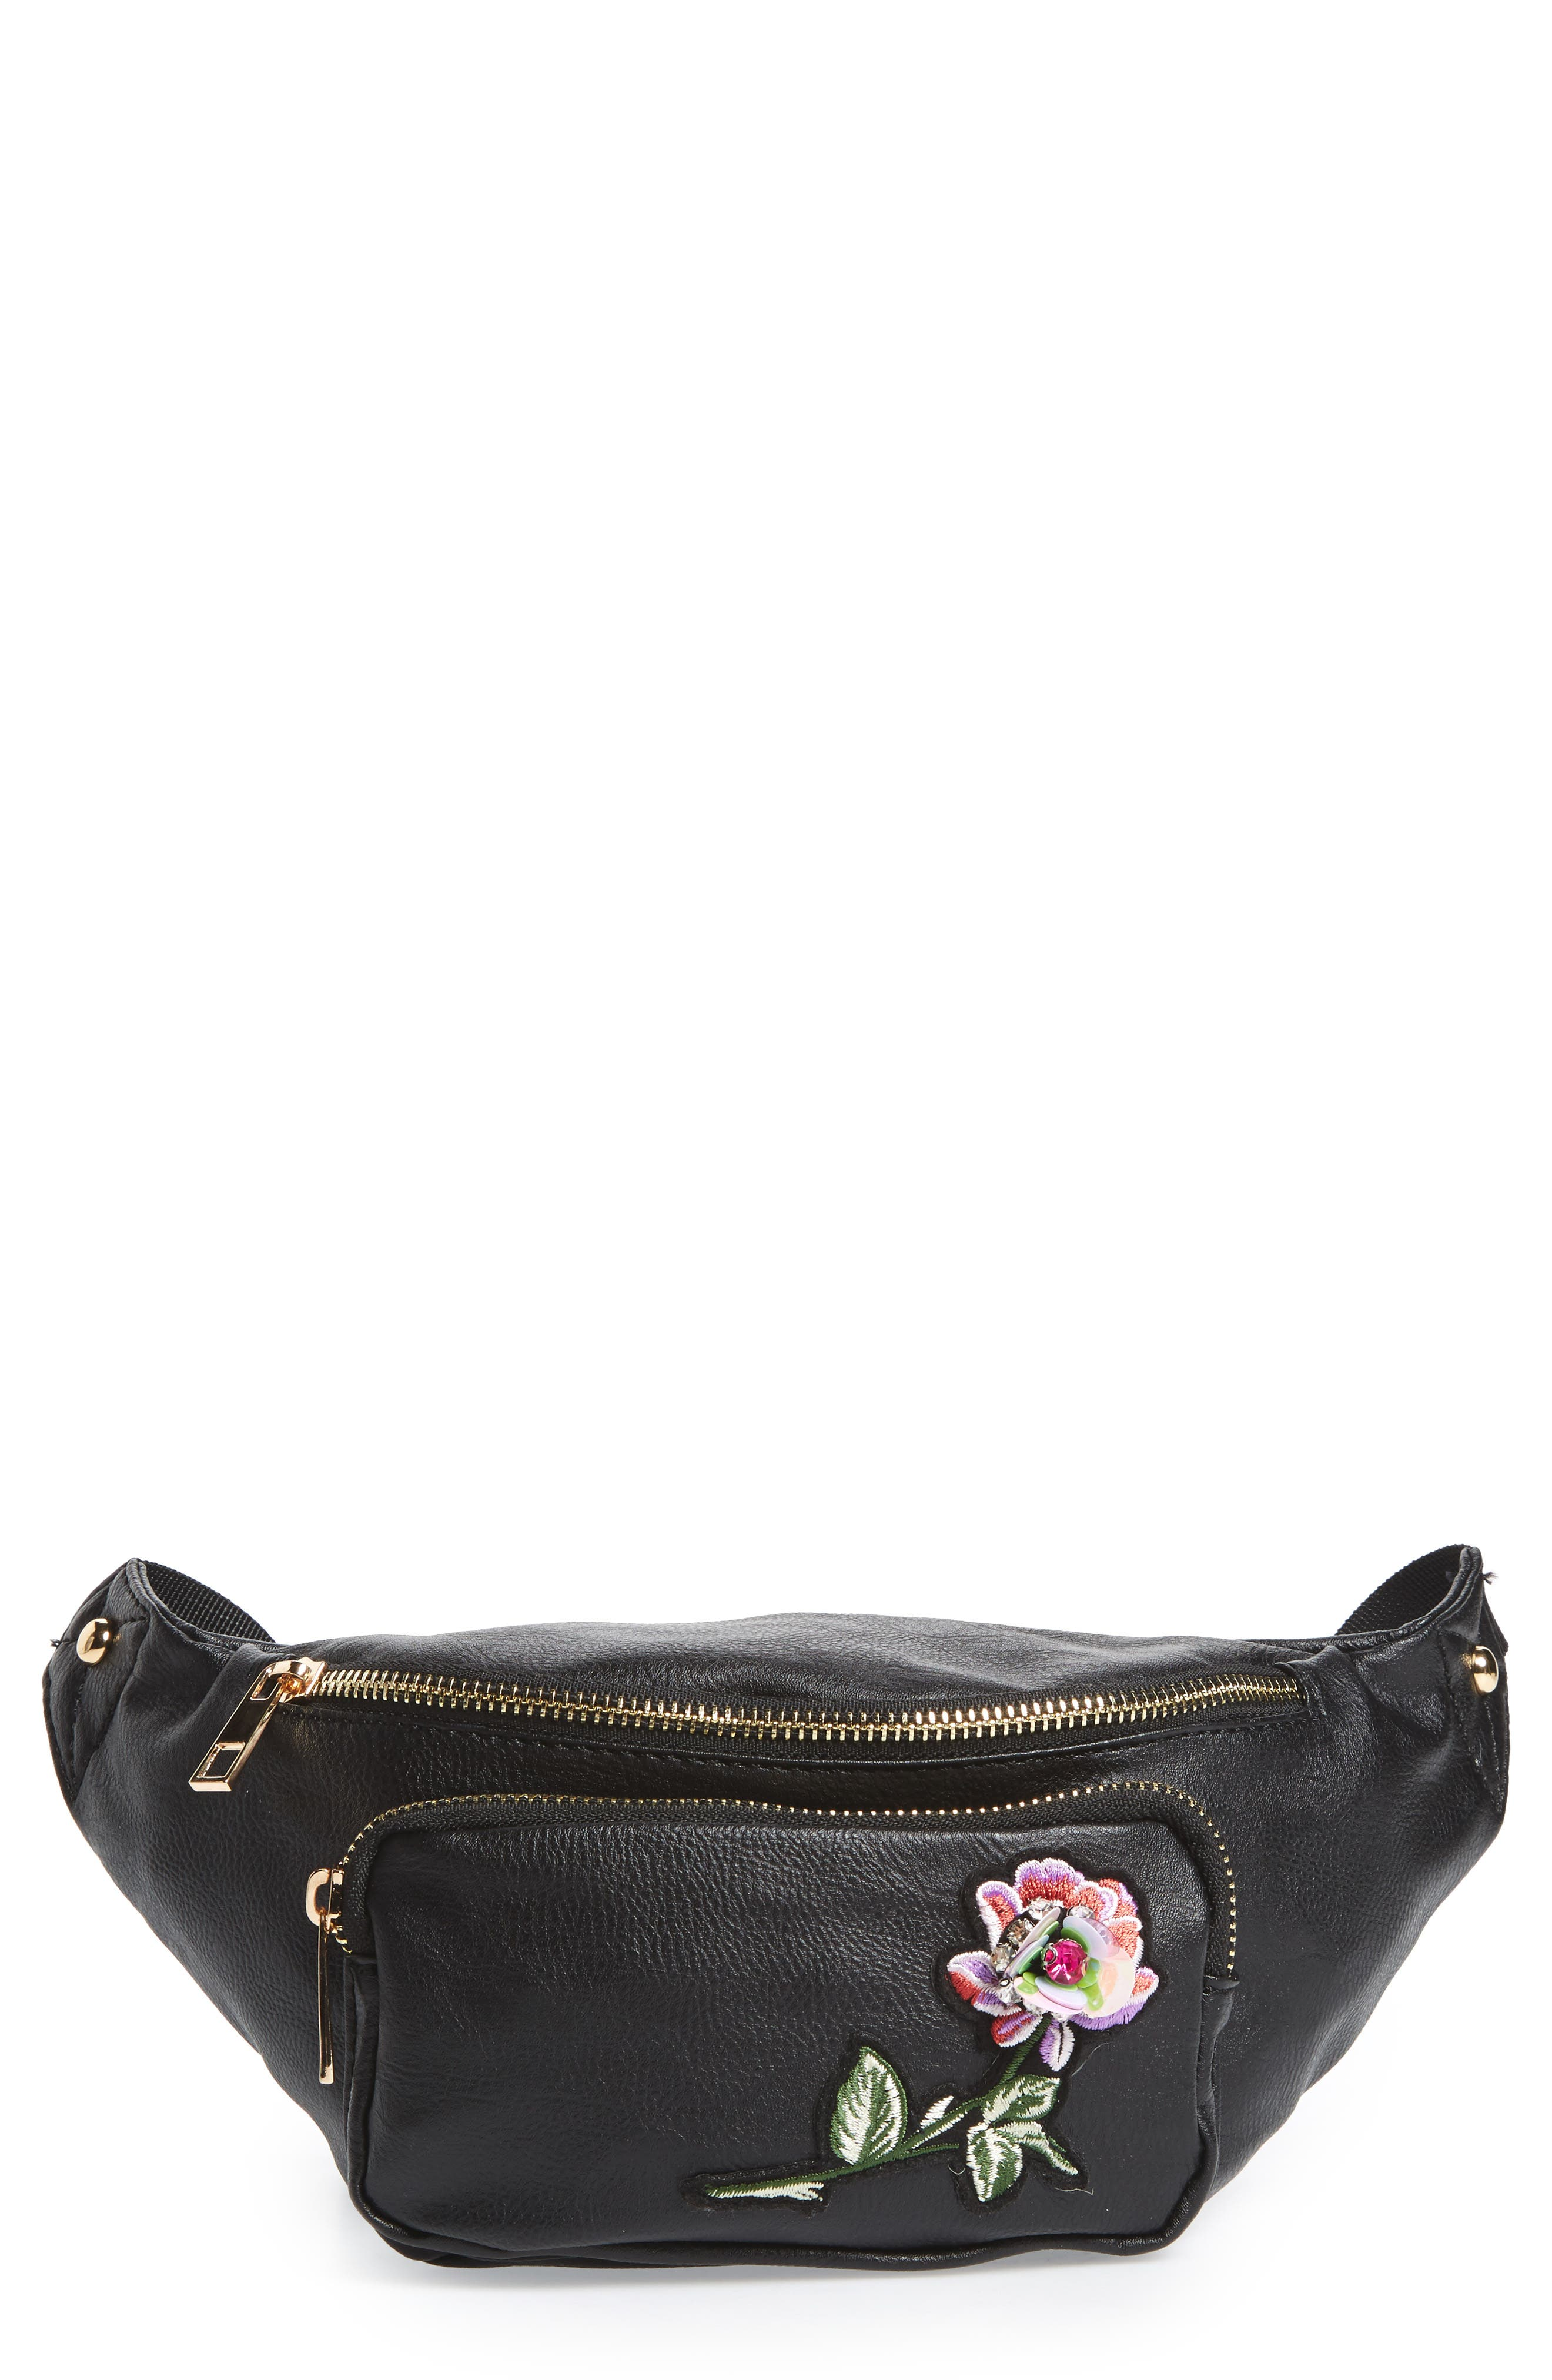 Main Image - OMG Embroidered Faux Leather Fanny Pack (Girls)